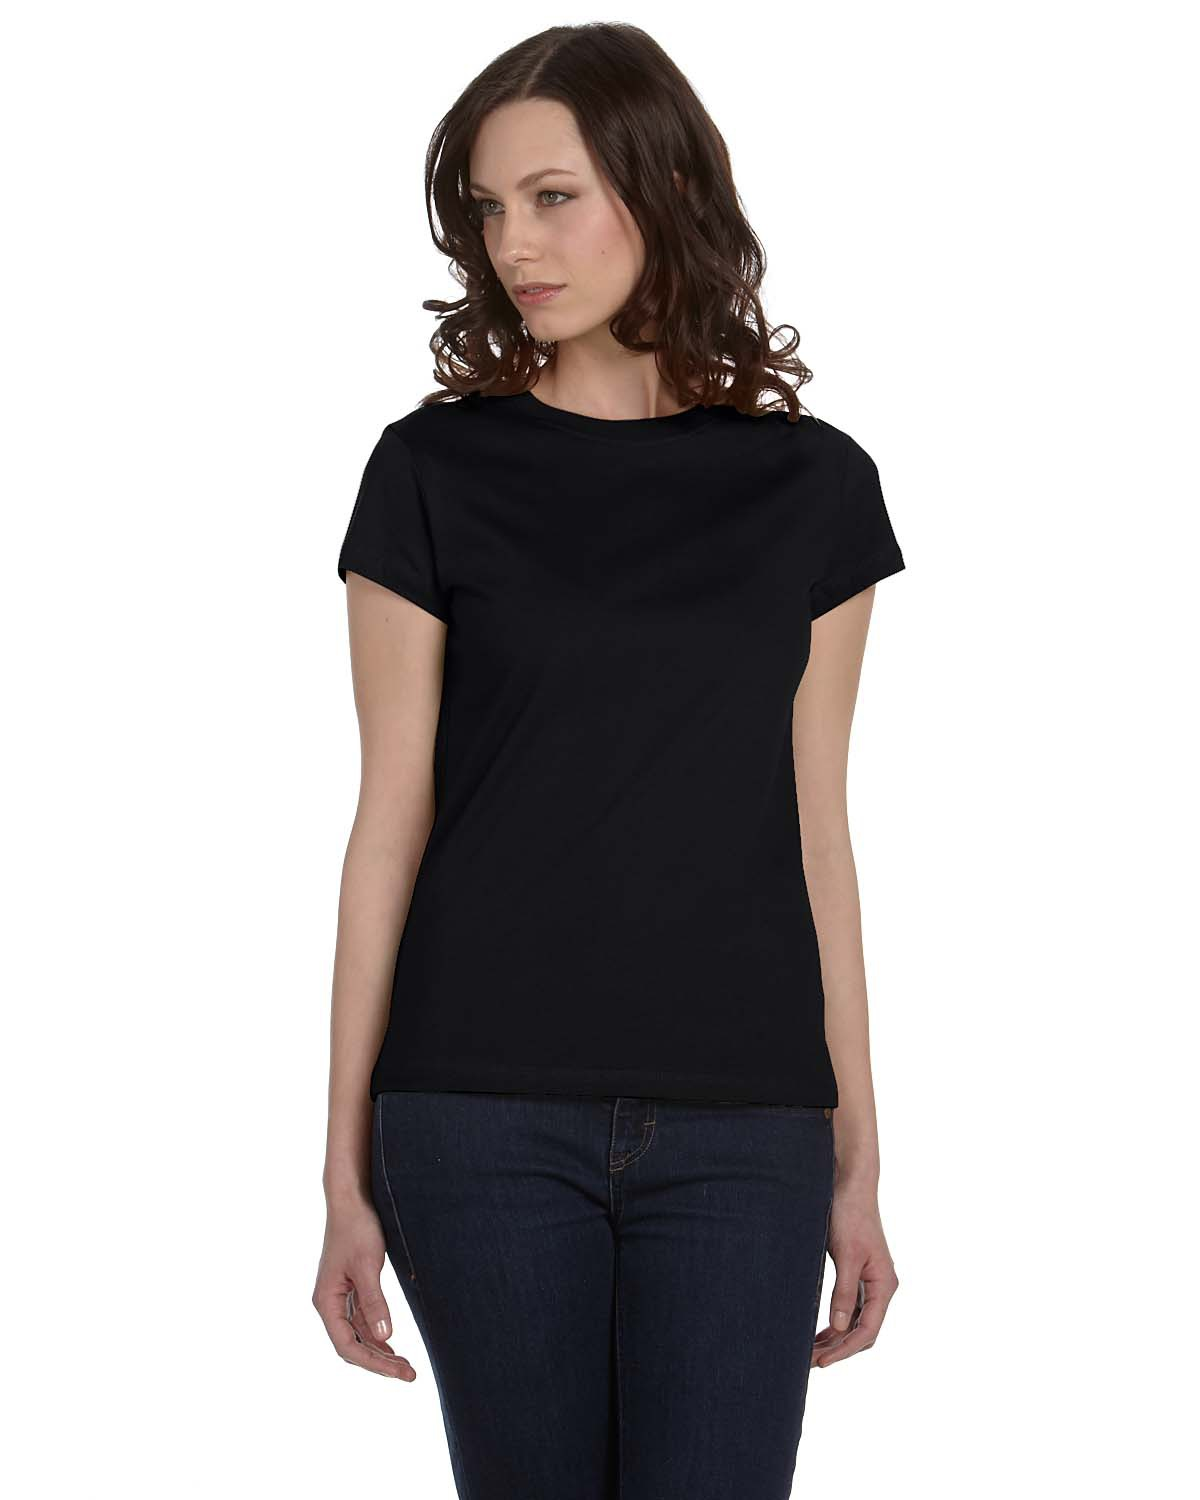 bella 6020 Ladies' Organic Cotton Short Sleeve T-Shirt